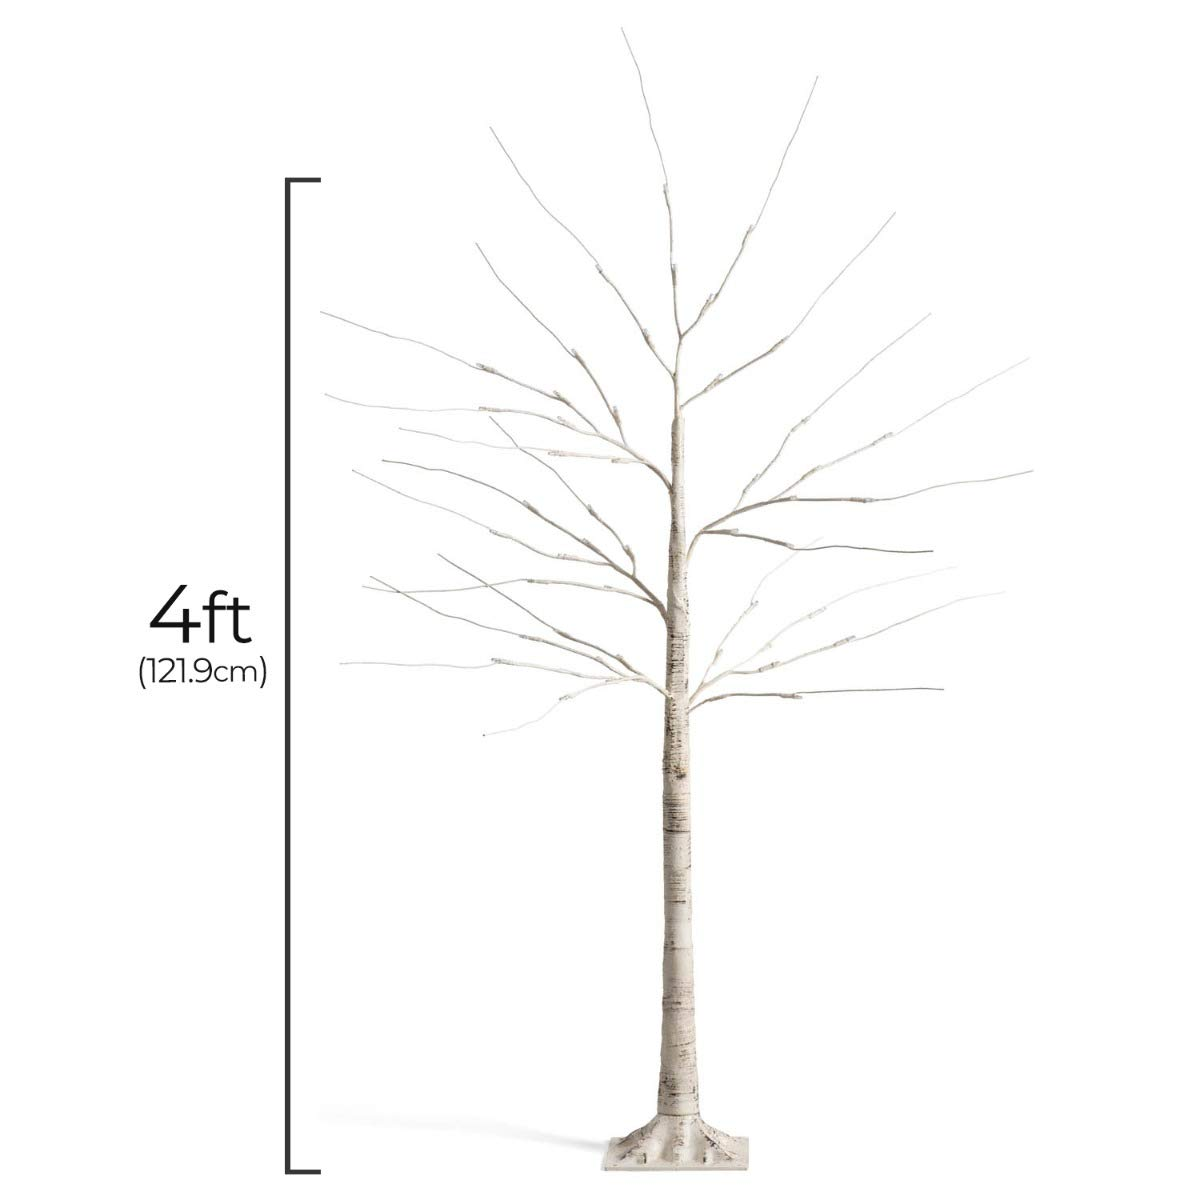 Indoor Outdoor Free Standing Light Up Twig Ornament 4ft 5ft 6ft Pre Lit Christmas Decoration Christow Warm White LED Birch Tree